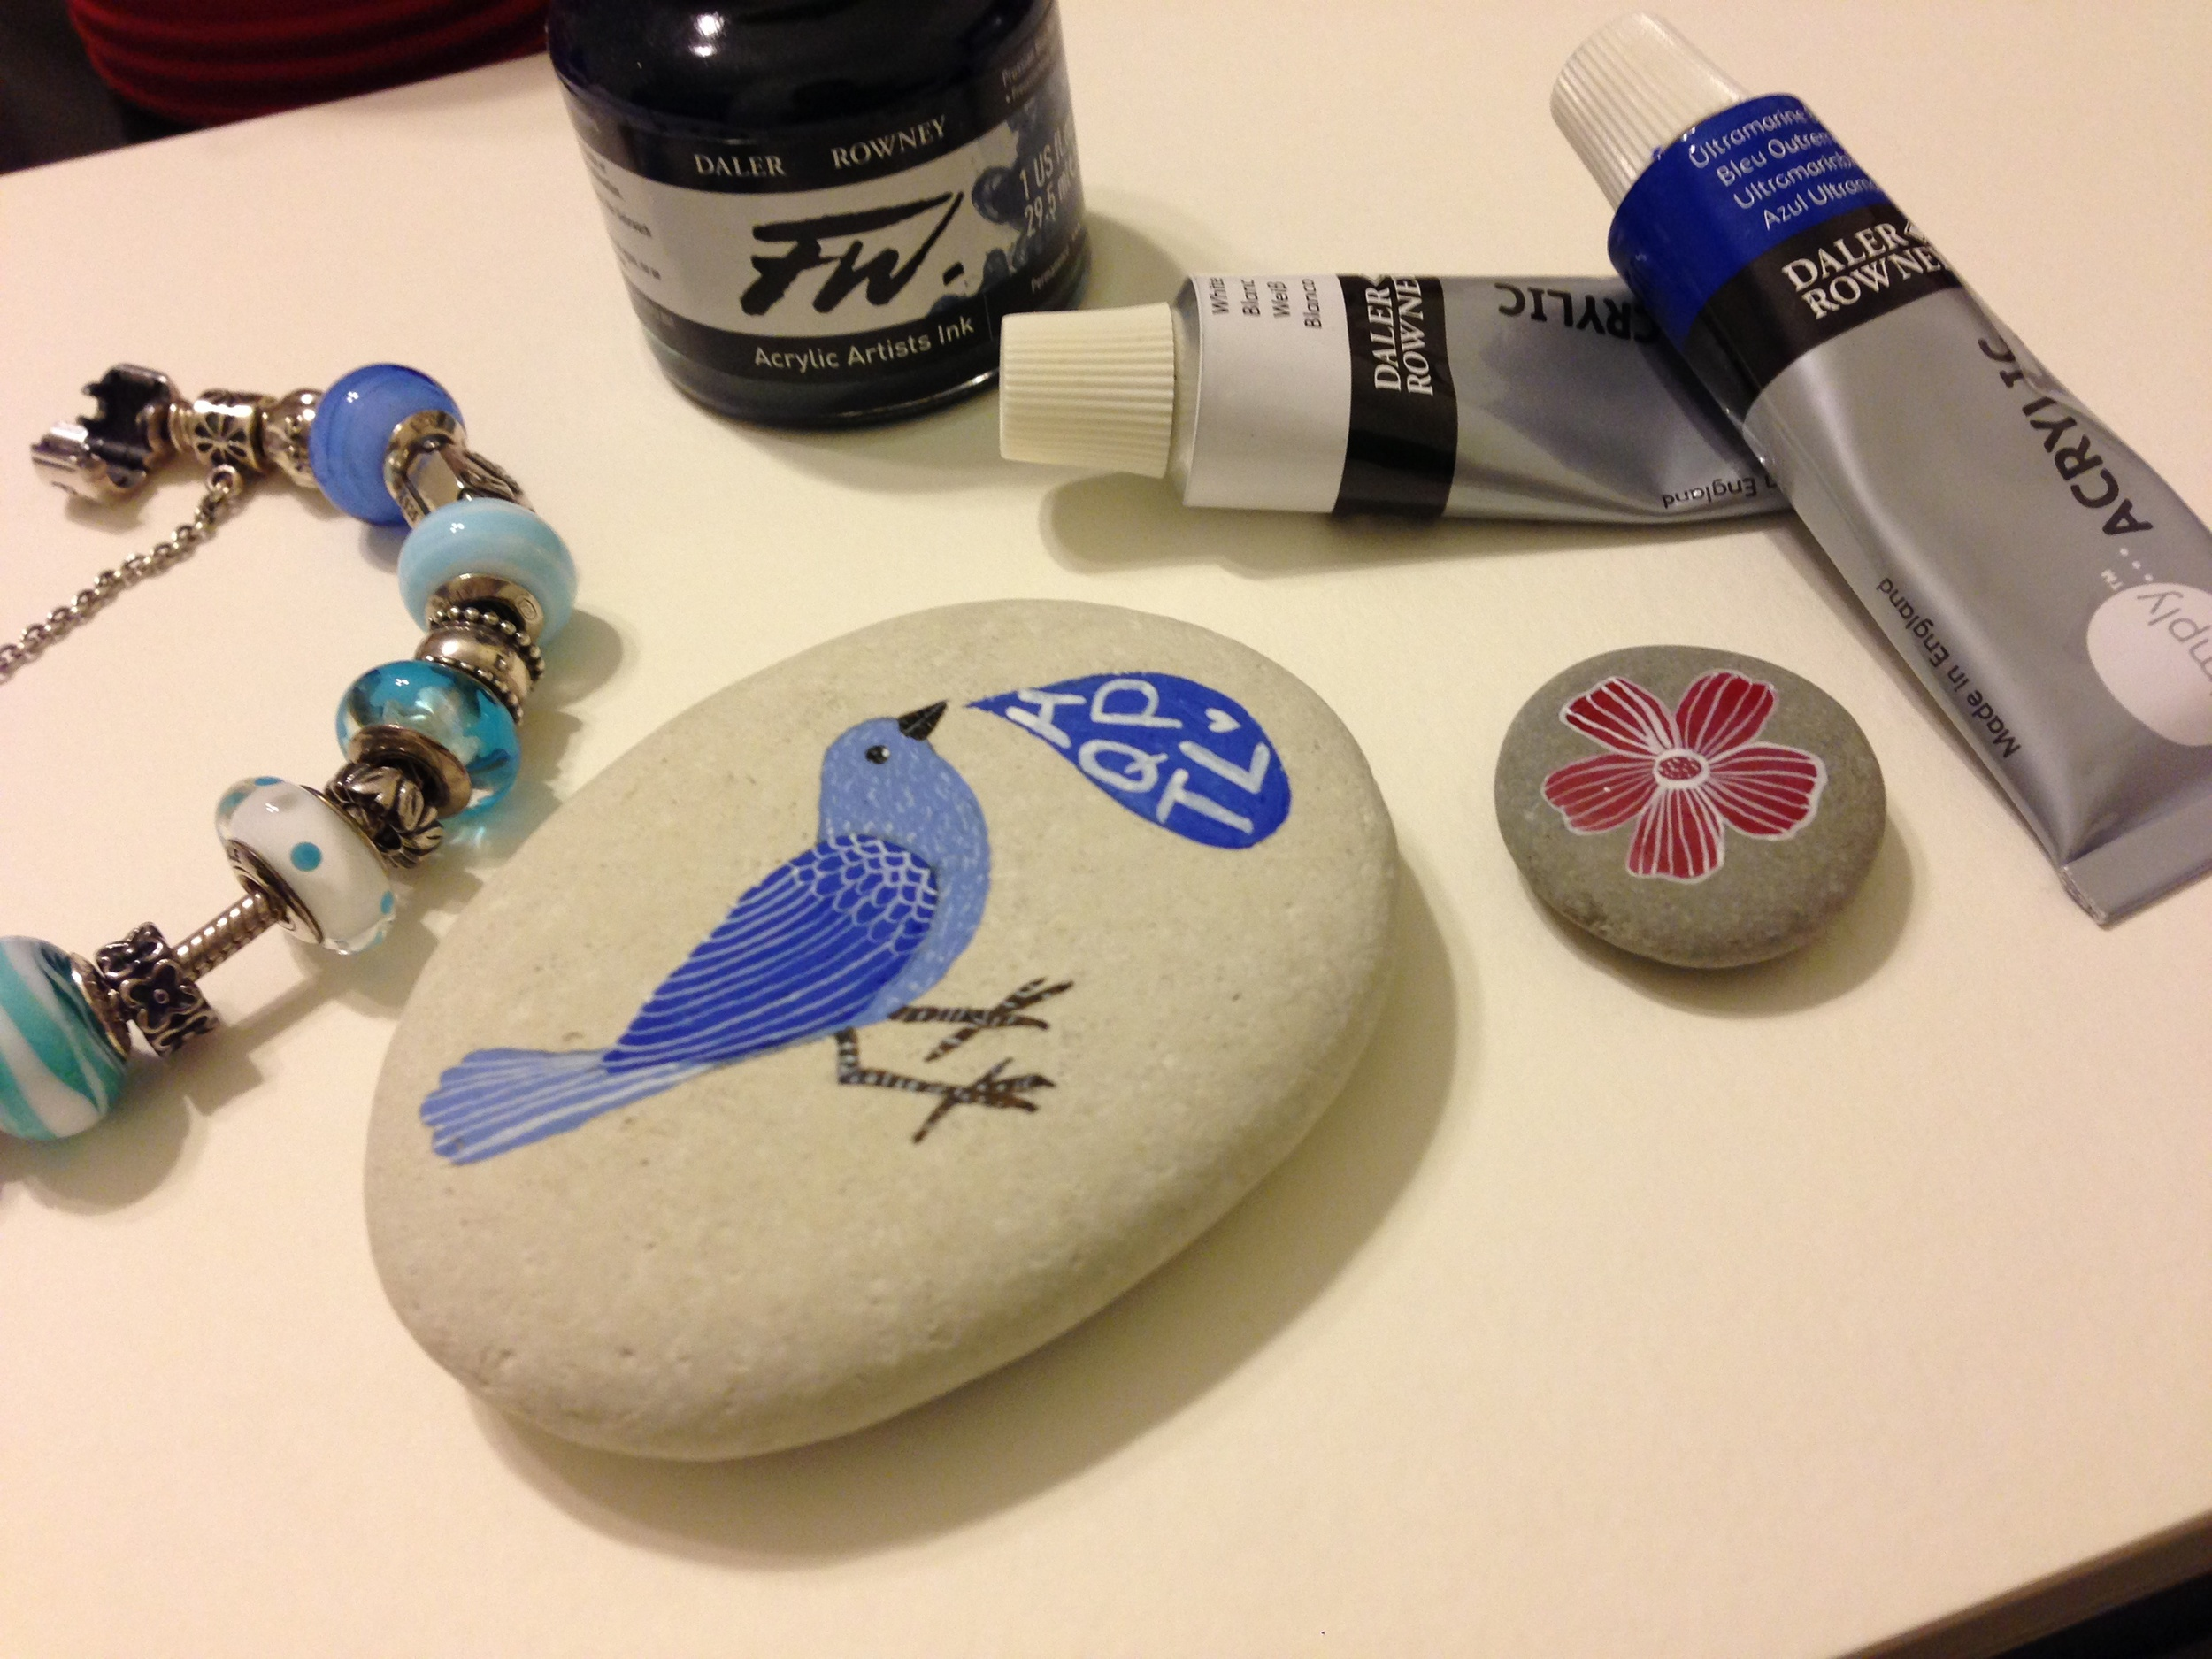 painted pebble